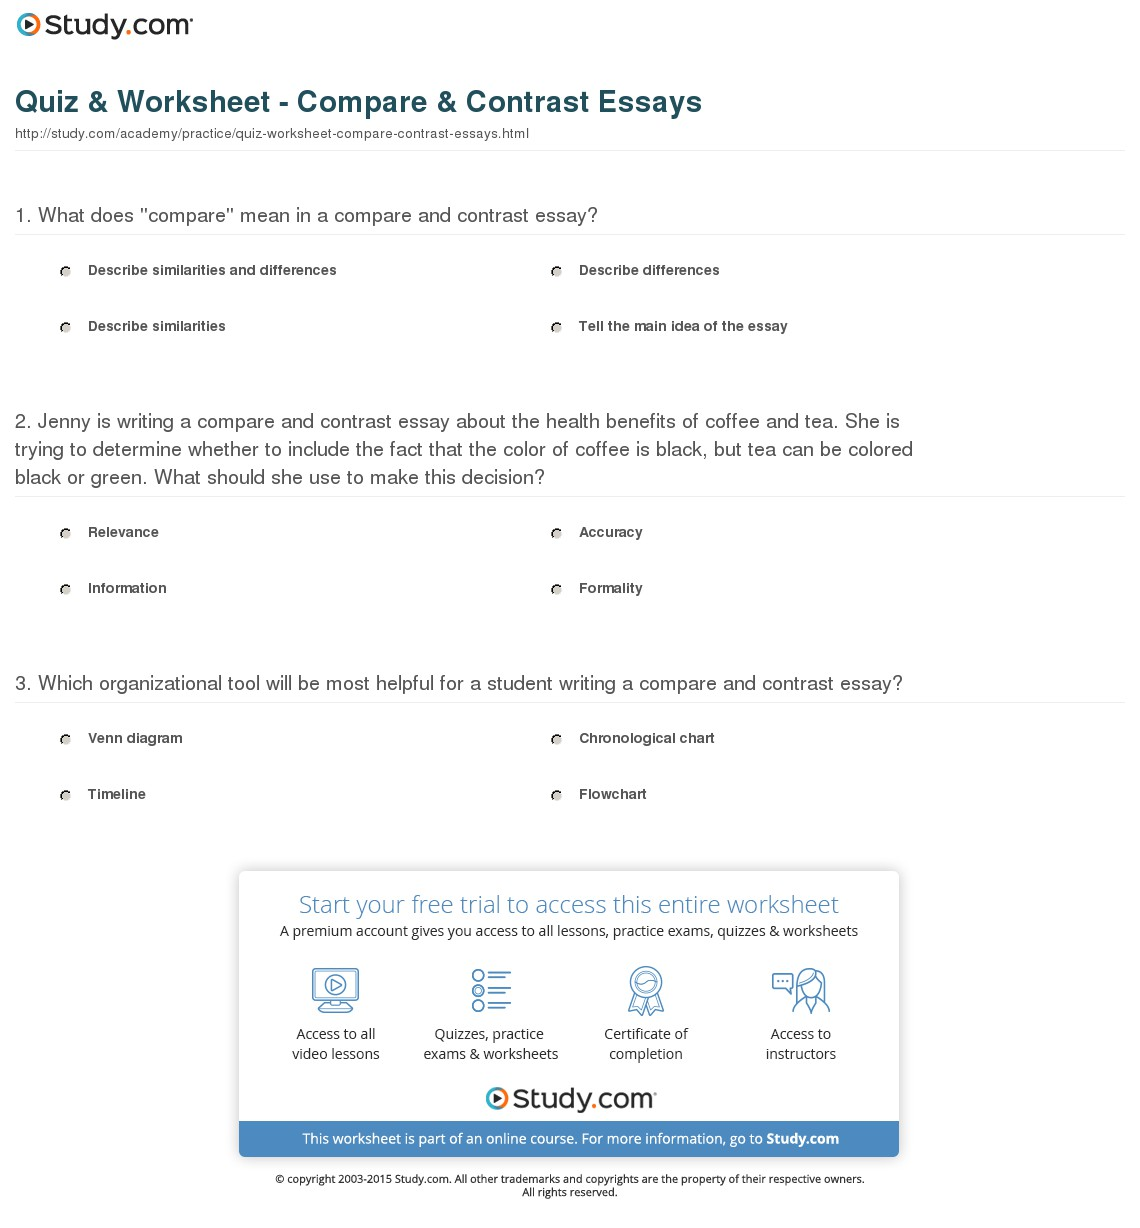 017 Essay Example Quiz Worksheet Compare Contrast Fascinating Topics And Graphic Organizer Julius Caesar Answers High School